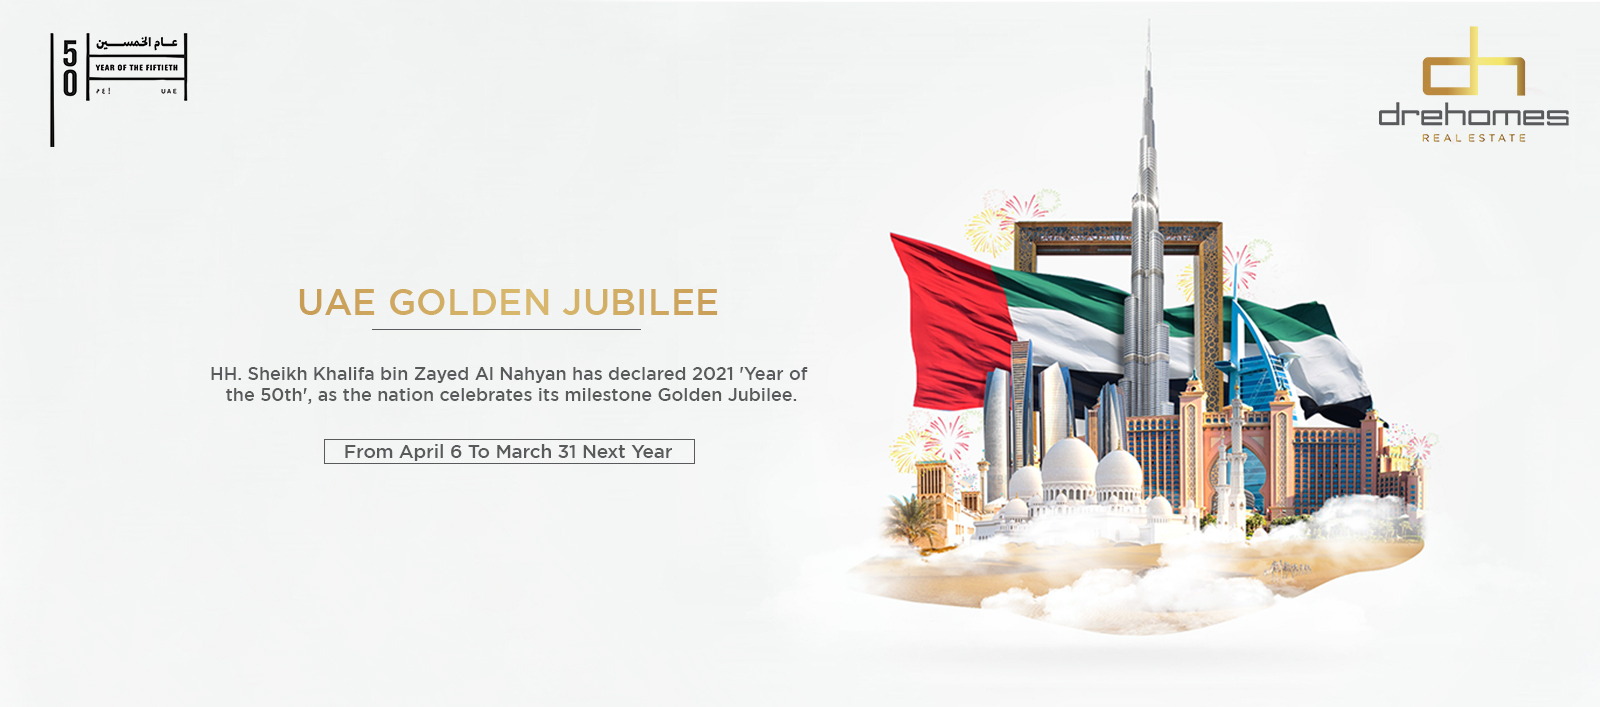 Uae Golden Jubilee